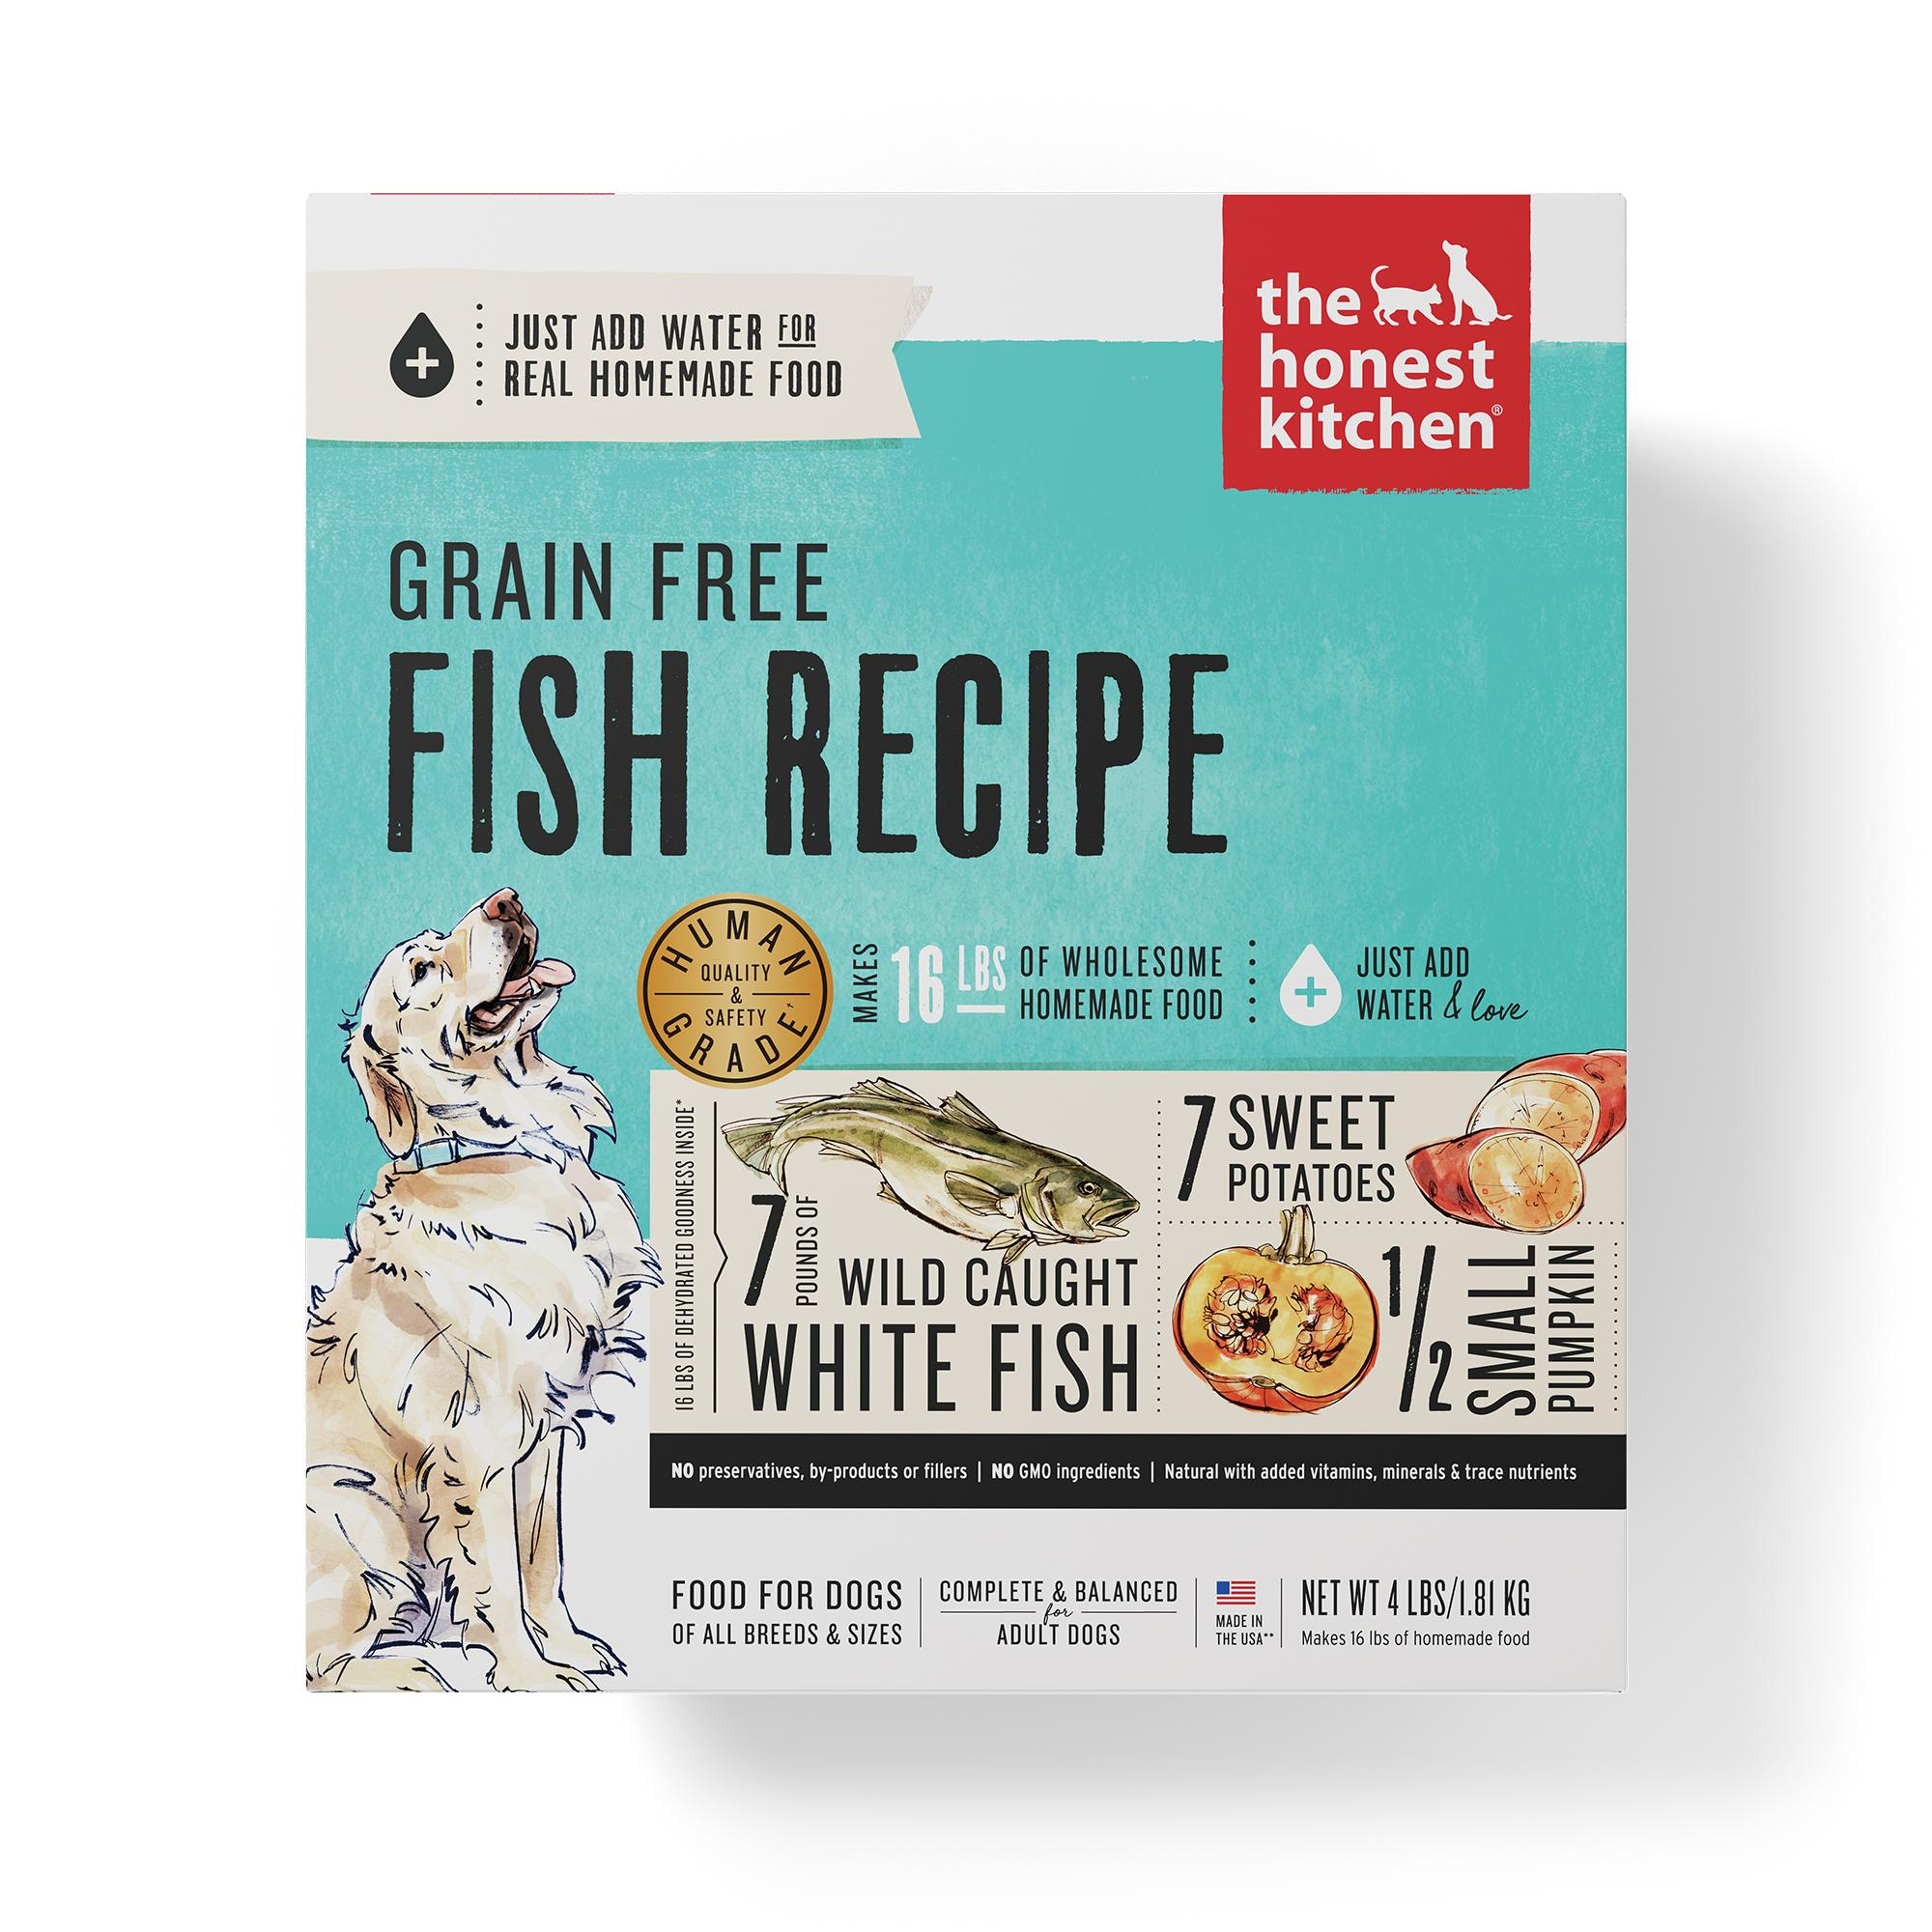 The Honest Kitchen Fish Recipe Grain-Free Dehydrated Dog Food Image